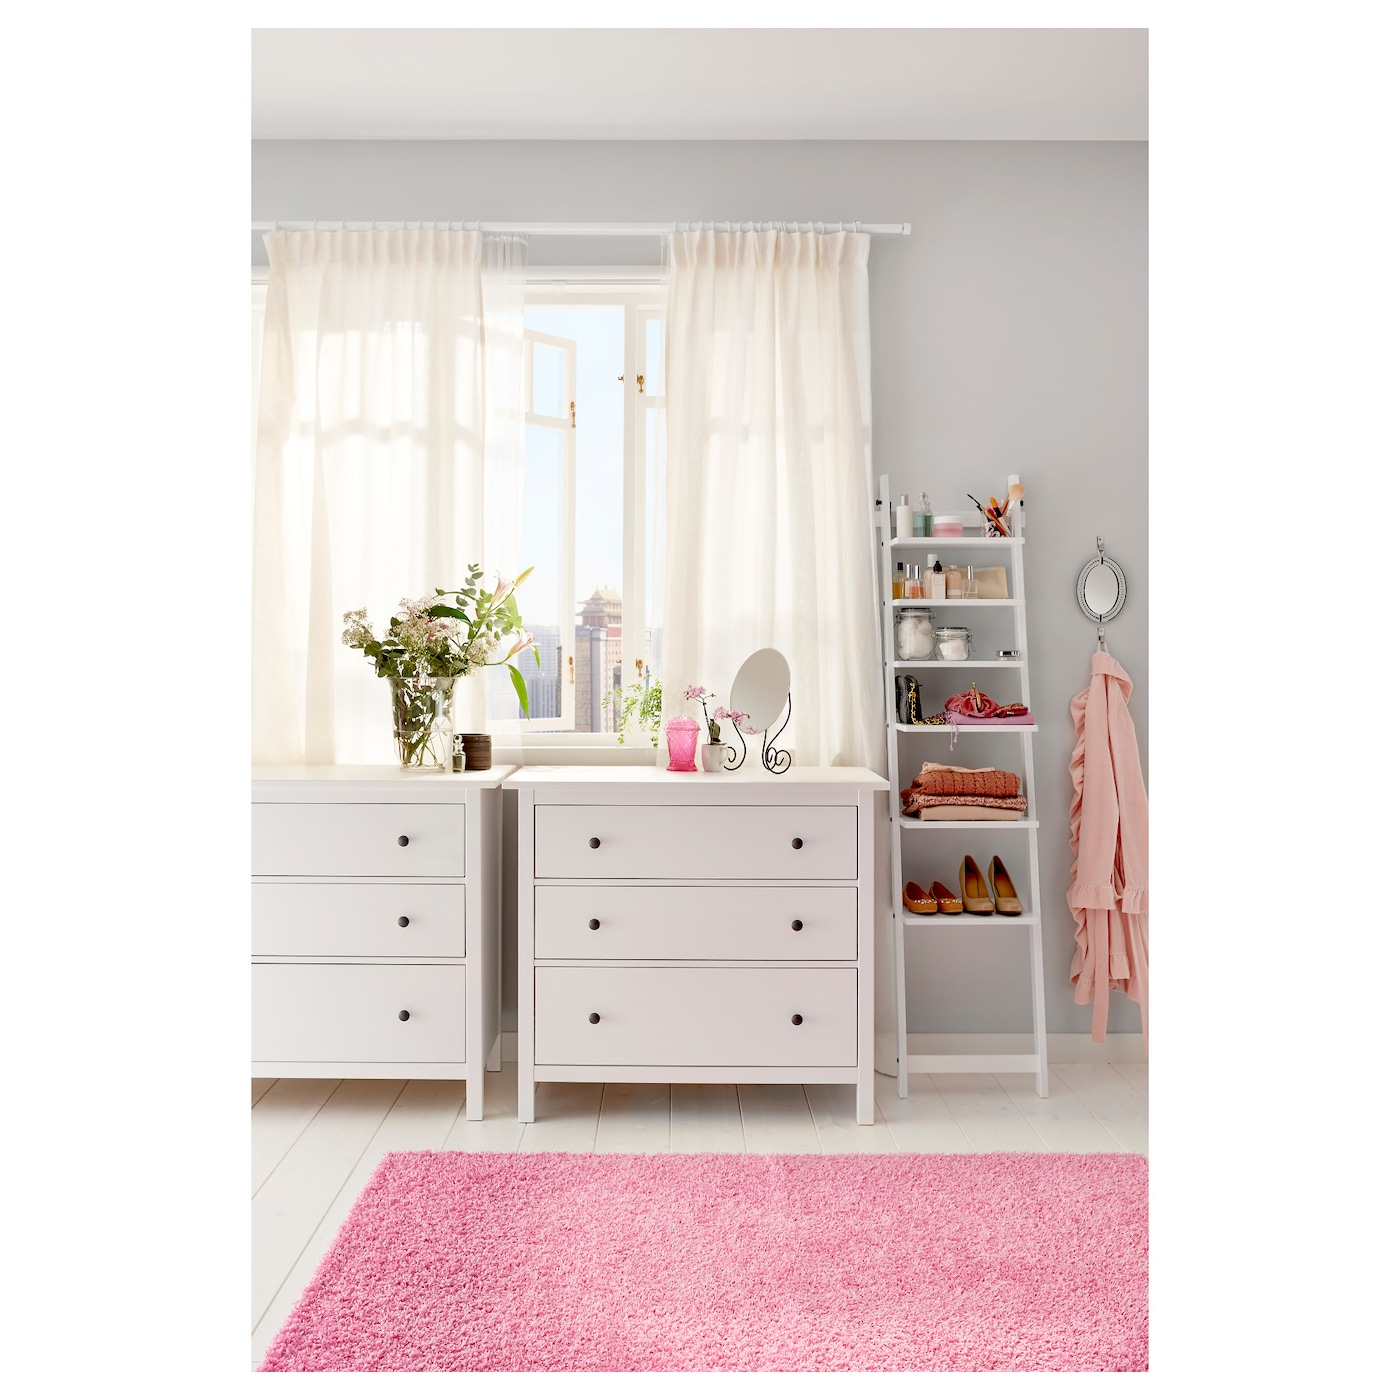 hemnes commode 3 tiroirs teint blanc 108 x 96 cm ikea. Black Bedroom Furniture Sets. Home Design Ideas